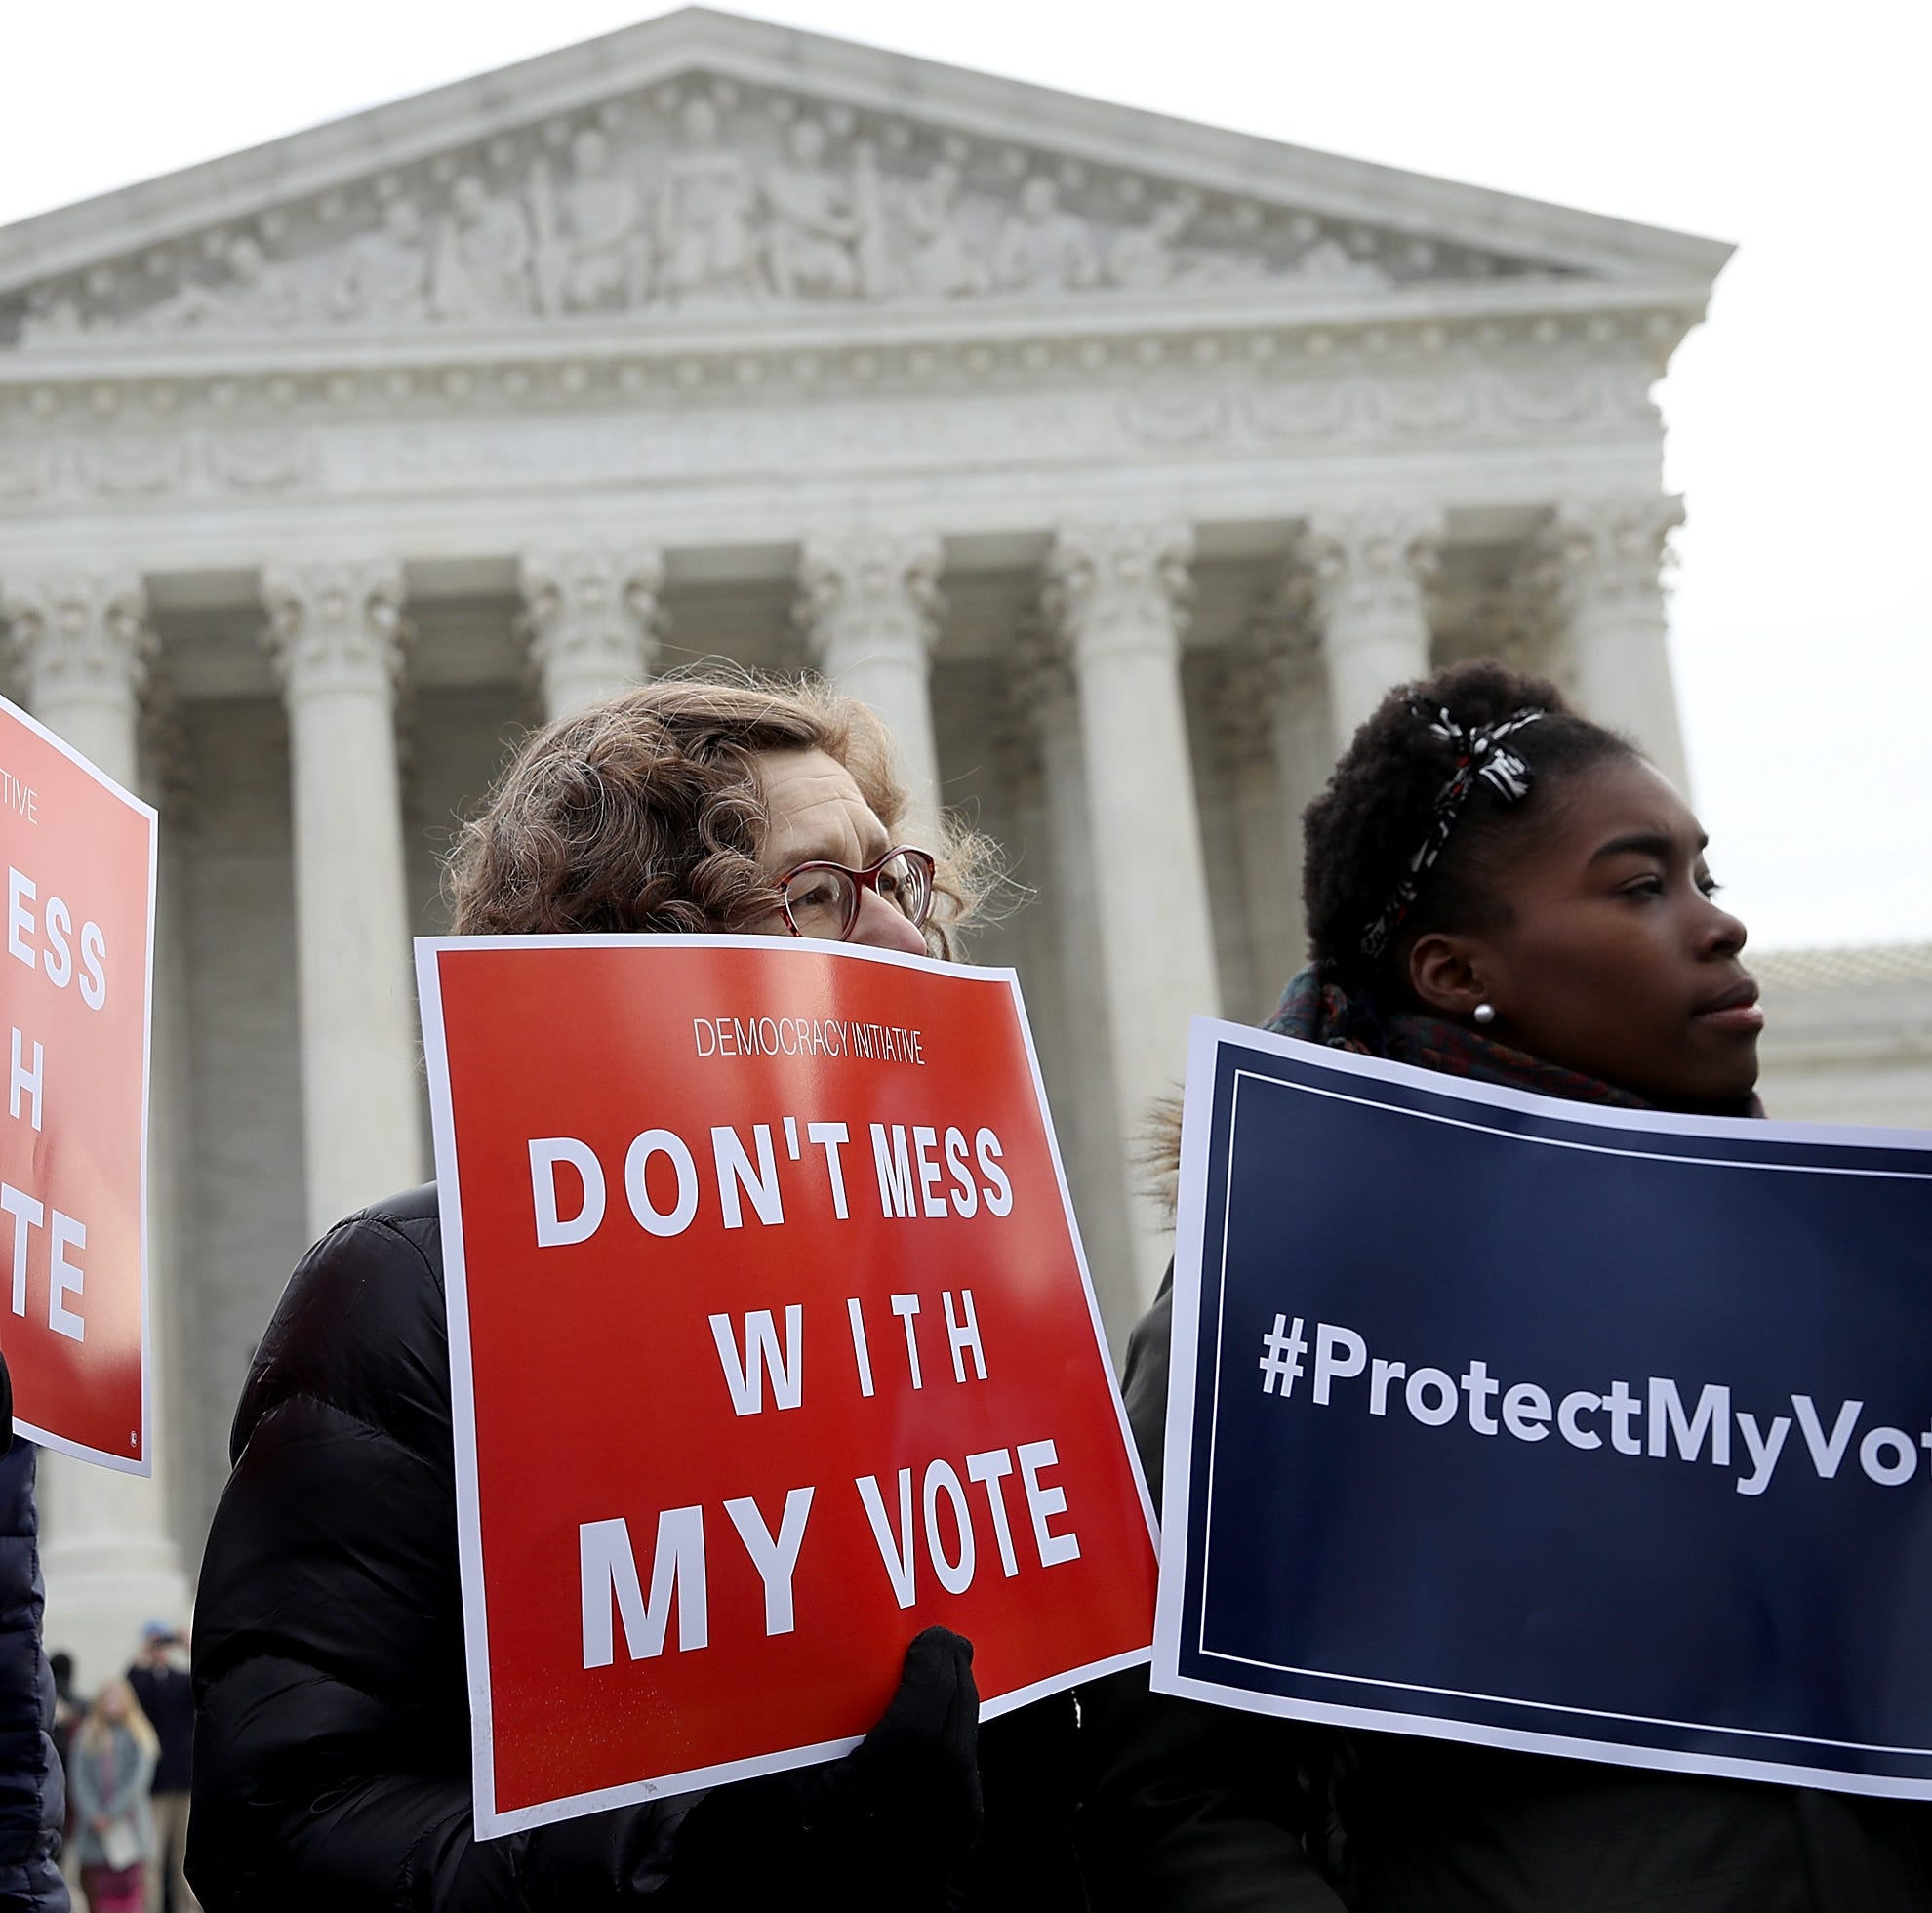 The real voter fraud is restricting a fundamental right